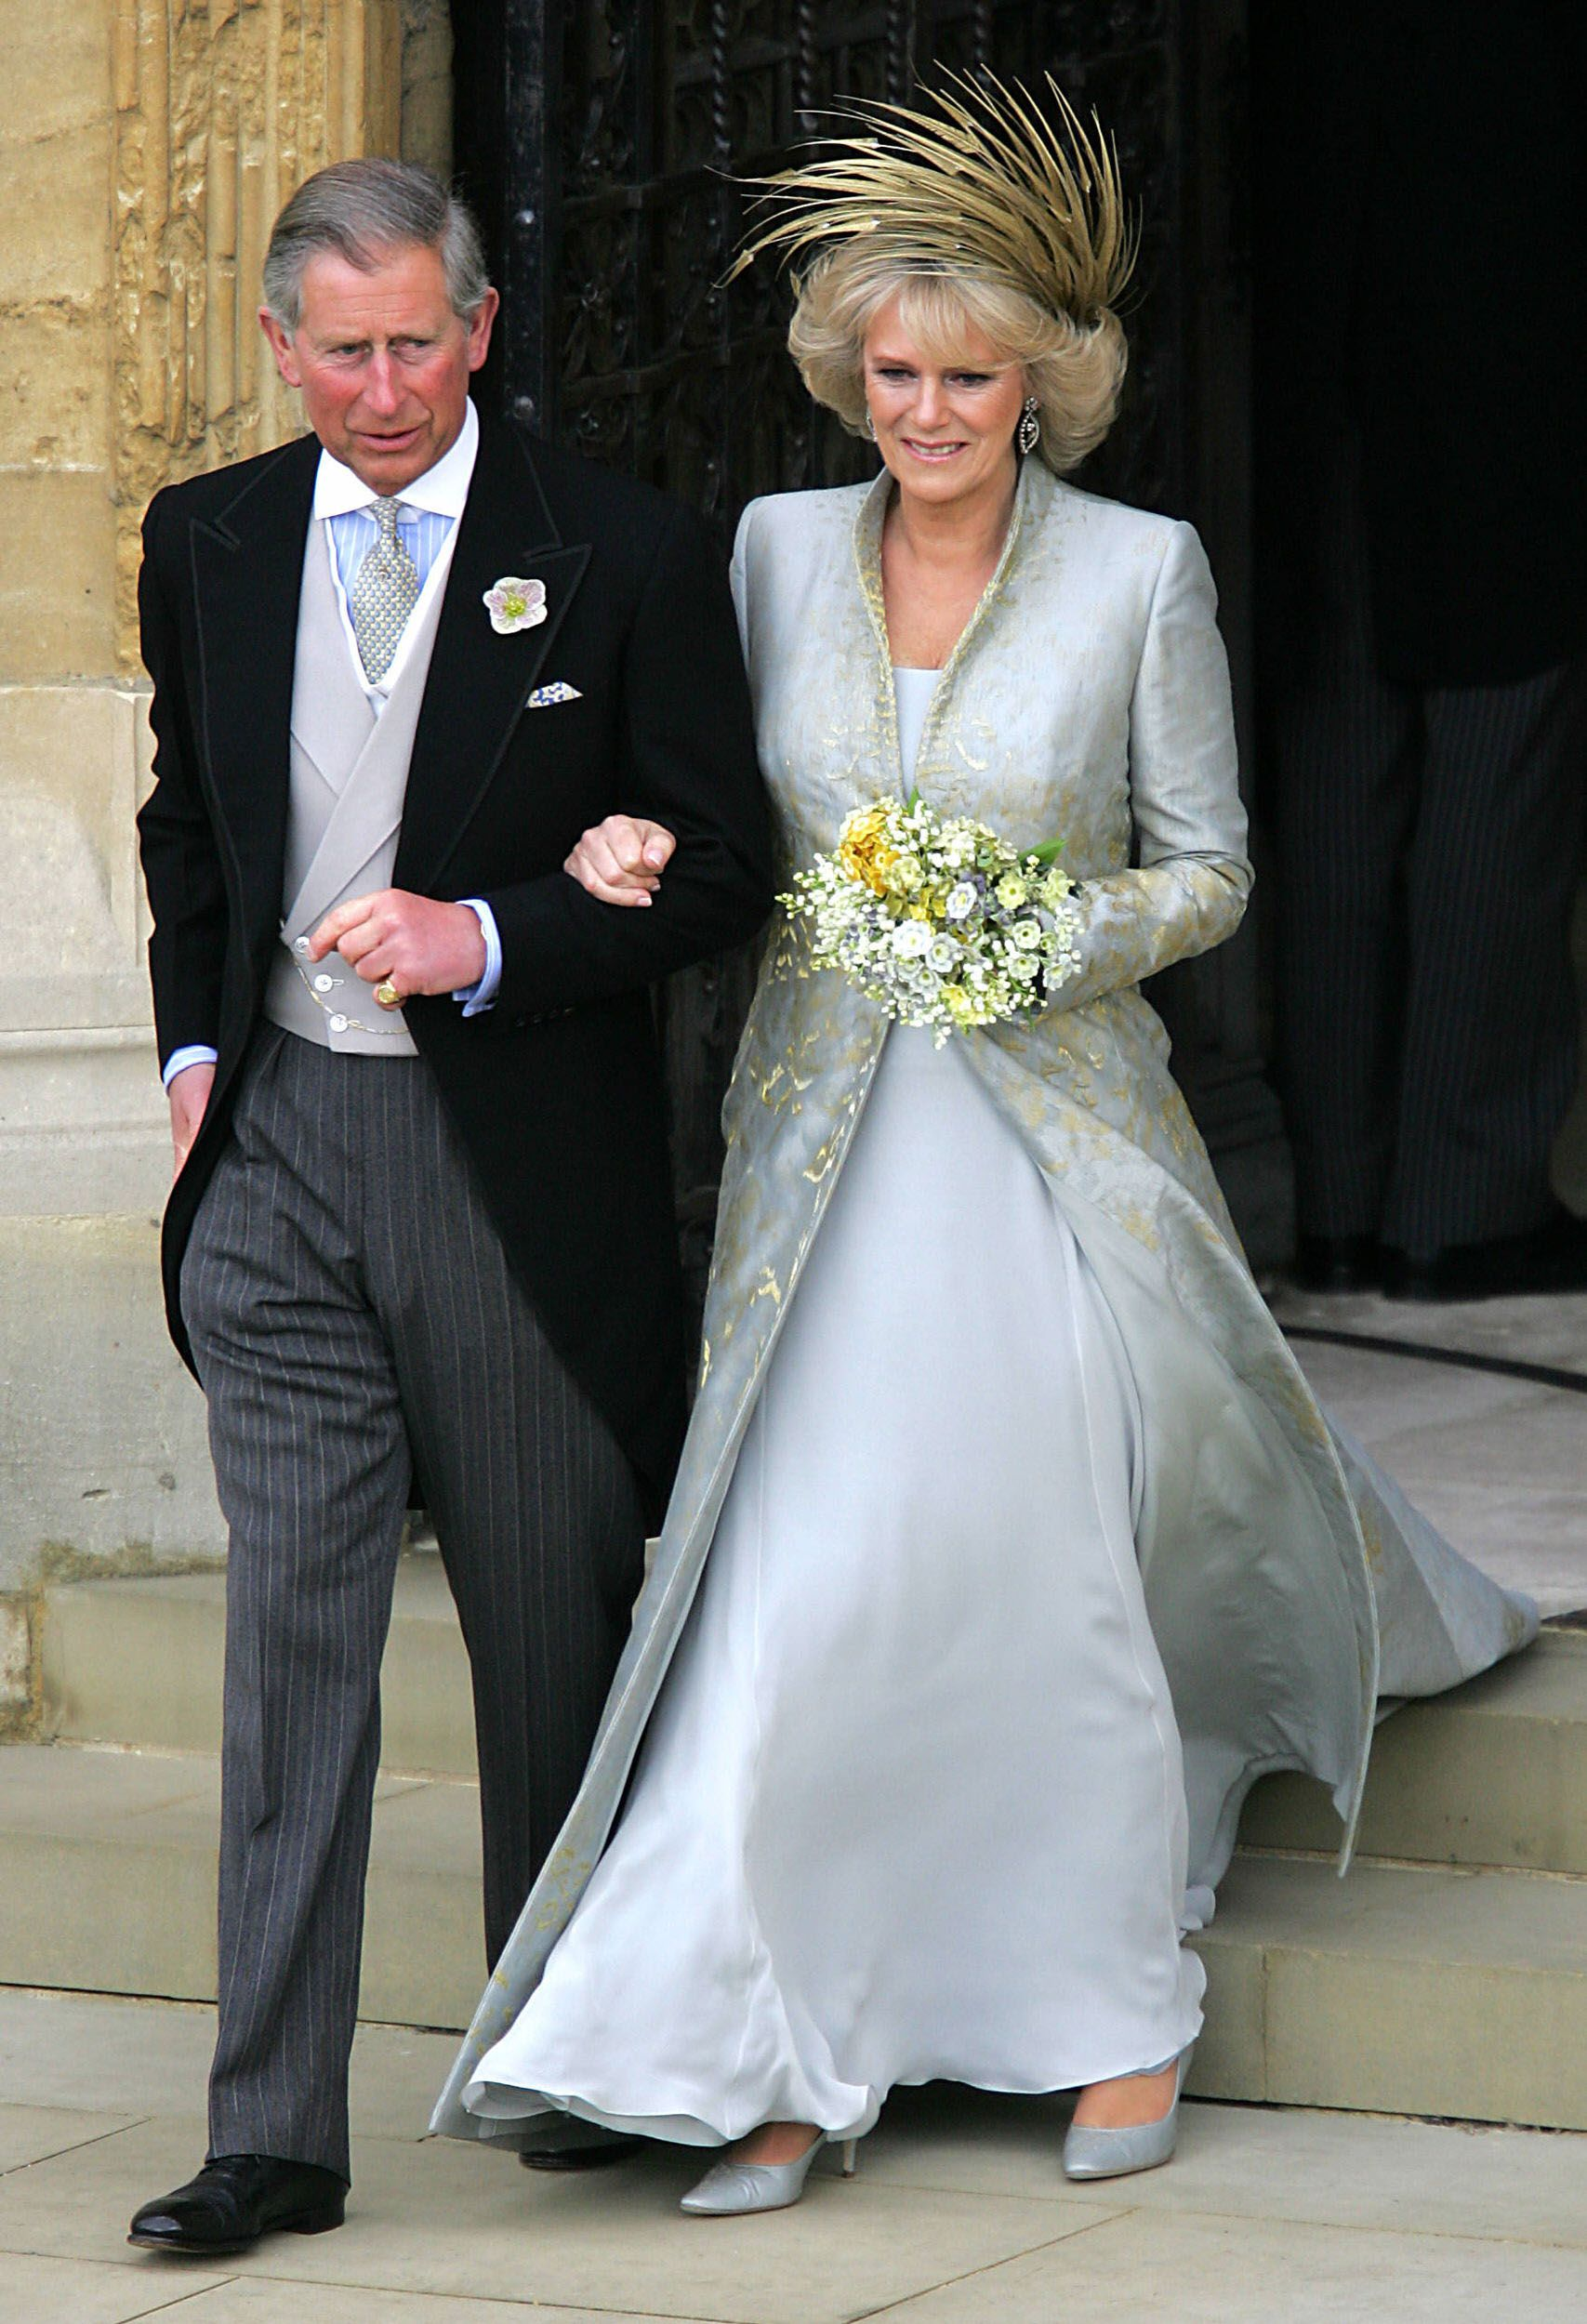 35 Iconic Royal Wedding Dresses Best Royal Wedding Gowns Of All Time,Beautiful Elegant Plus Size Dresses For Wedding Guest